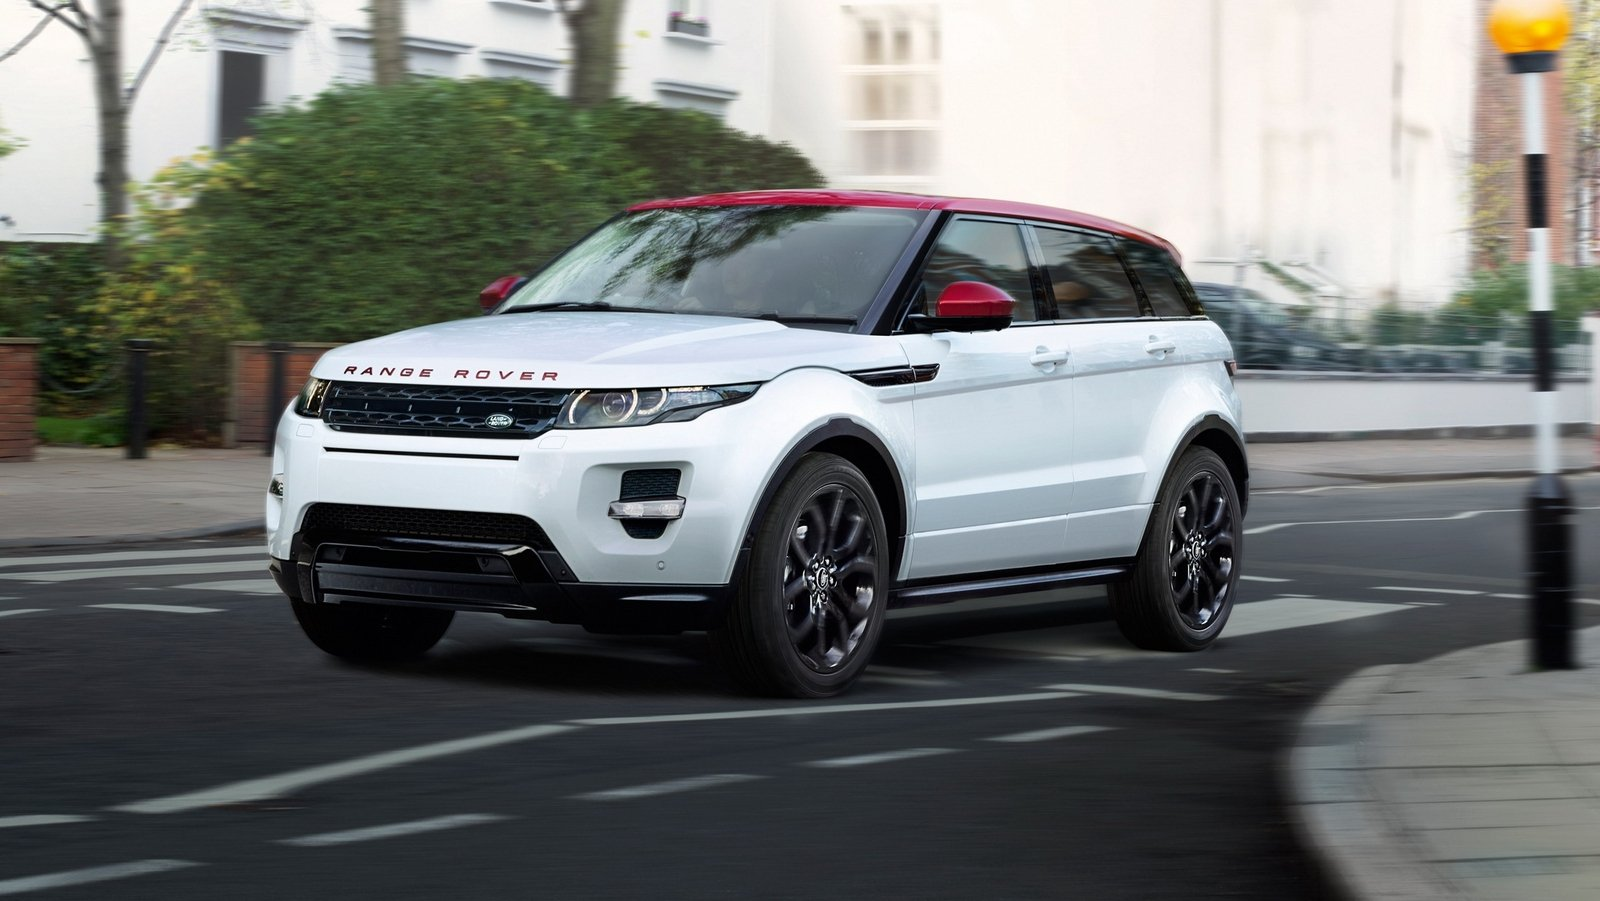 2015 land rover range rover evoque nw8 picture 611505 truck review. Black Bedroom Furniture Sets. Home Design Ideas